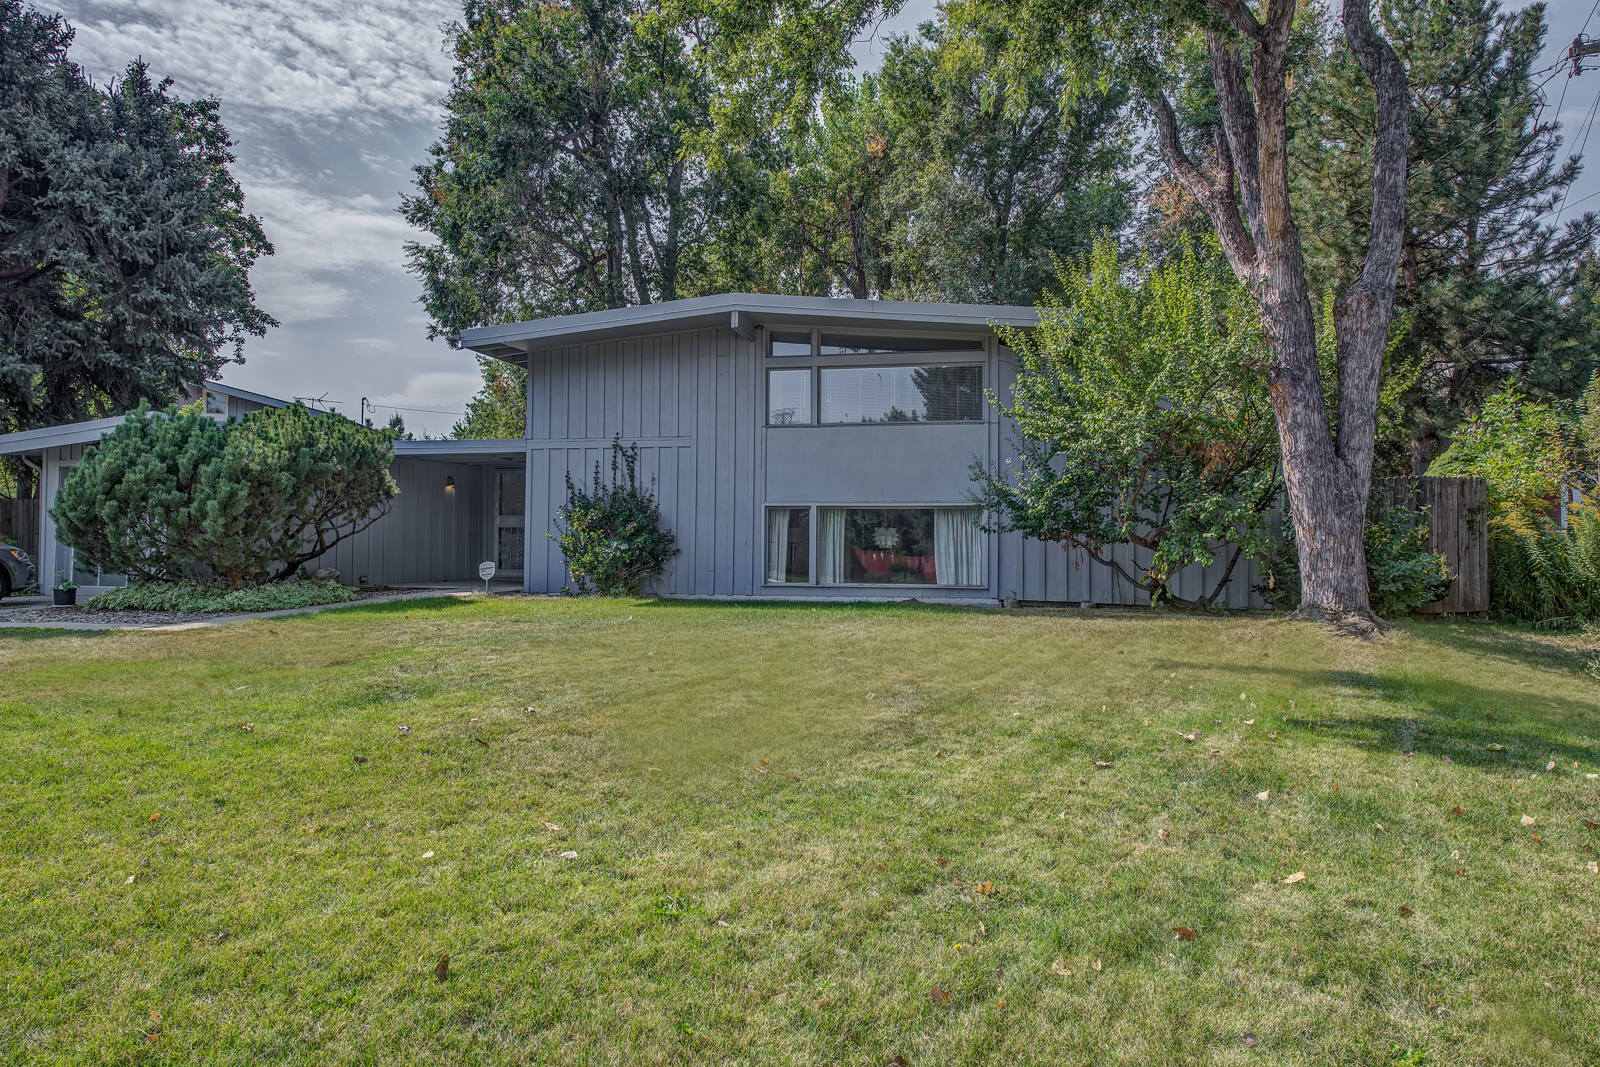 Single Family Home for Sale at Rare Mid-Century Modern Home 1355 South Jasmine Way Denver, Colorado, 80224 United States